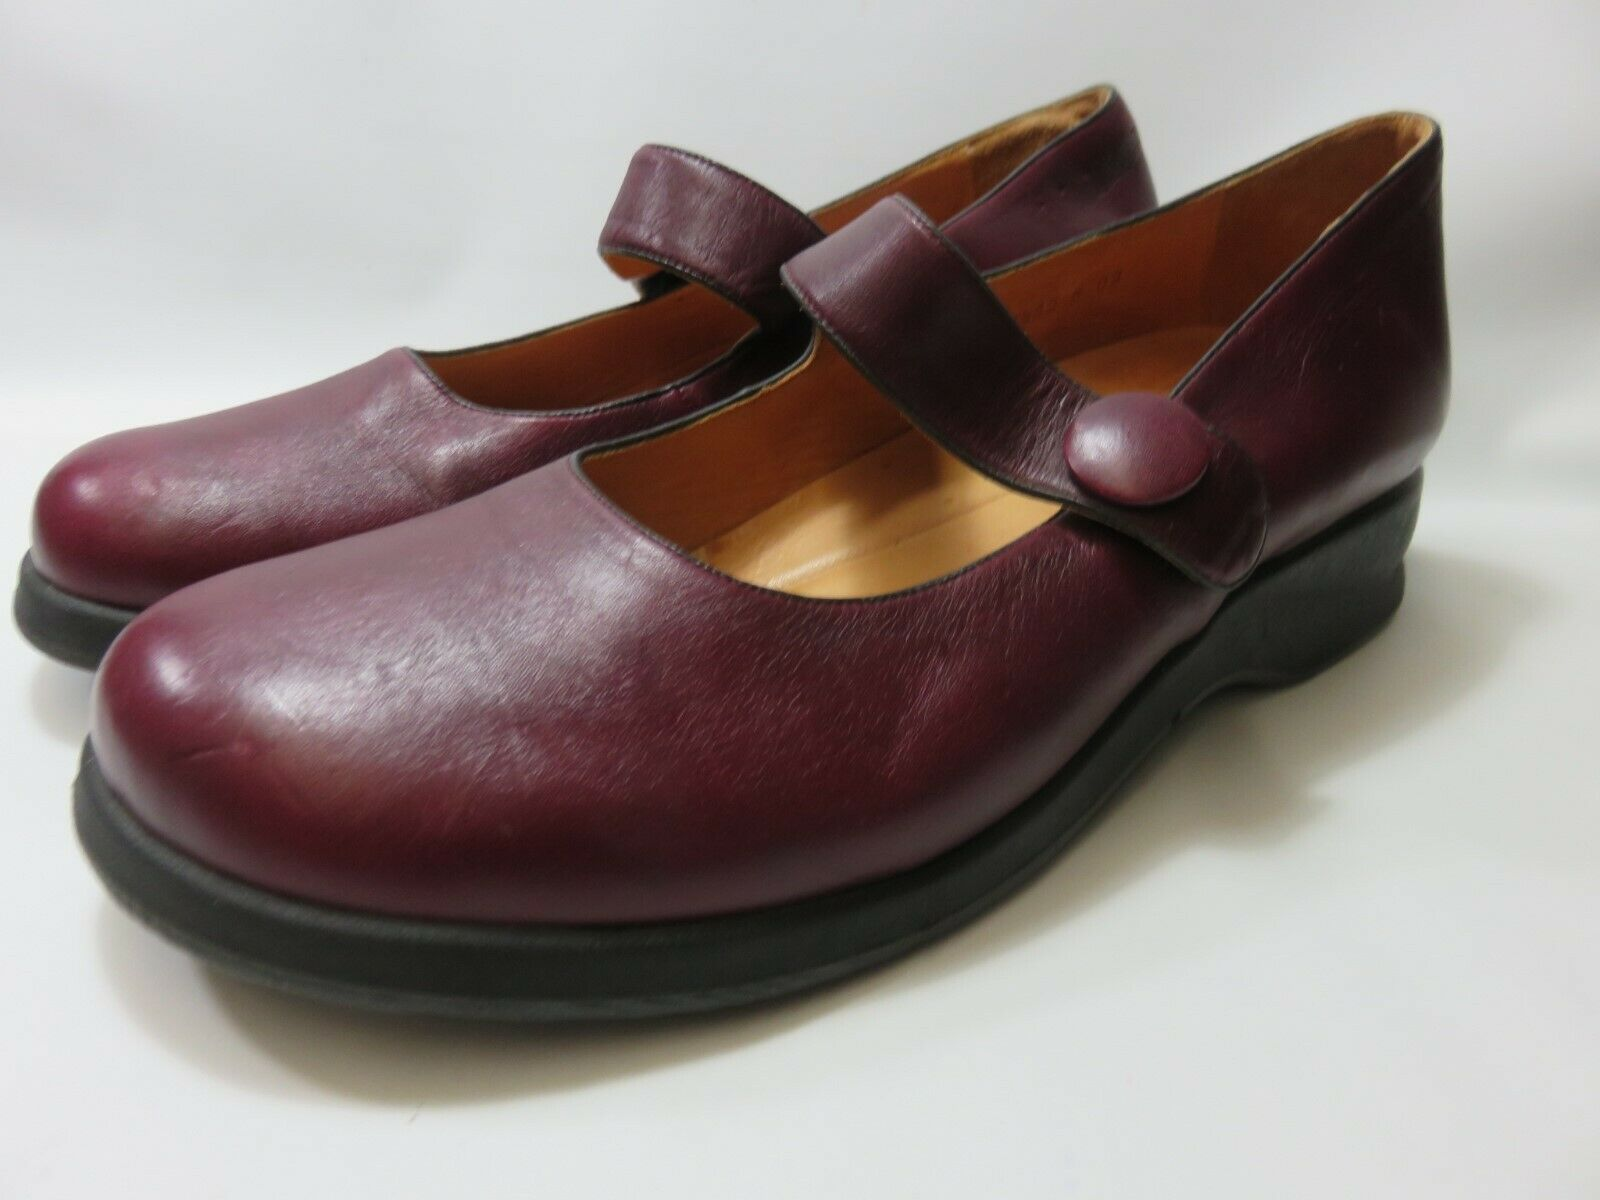 MURTOSA Leather Burgundy Mary Jane's Women's Size 42 Med EUC  MADE IN PORTUGAL